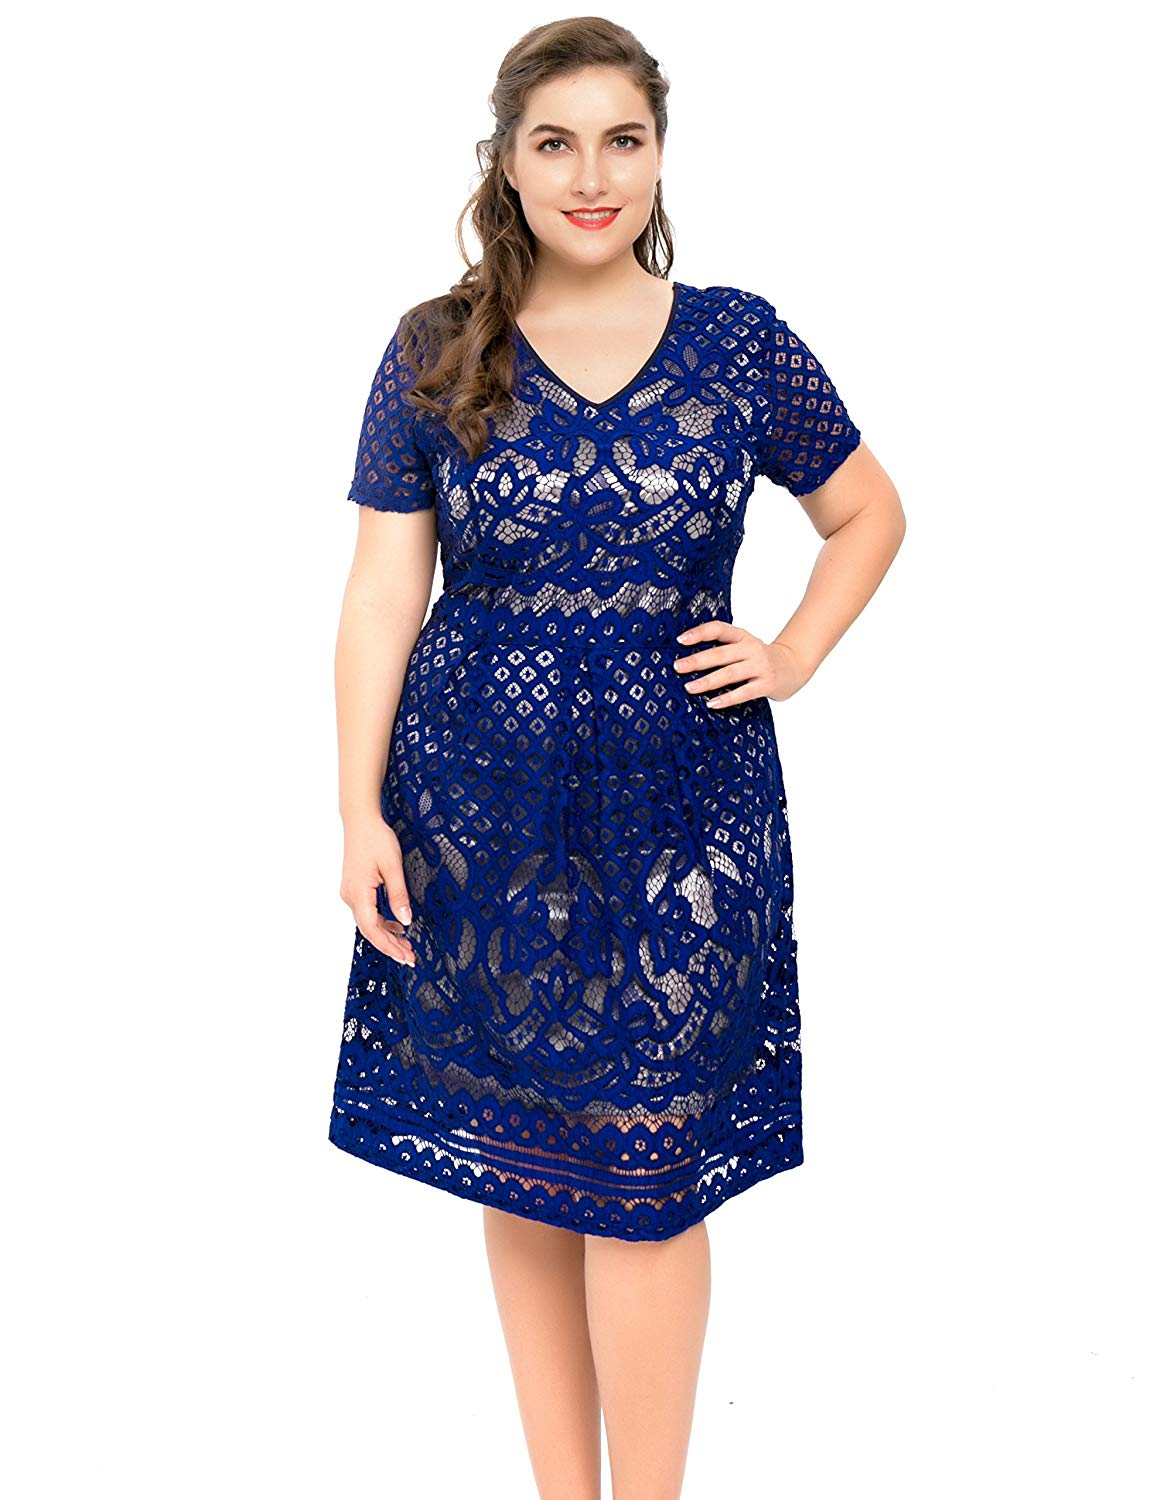 9e1f777a7f1e Chicwe Women's Plus Size Lined Floral Lace Skater Dress-Knee Length Casual  Party Cocktail Blue